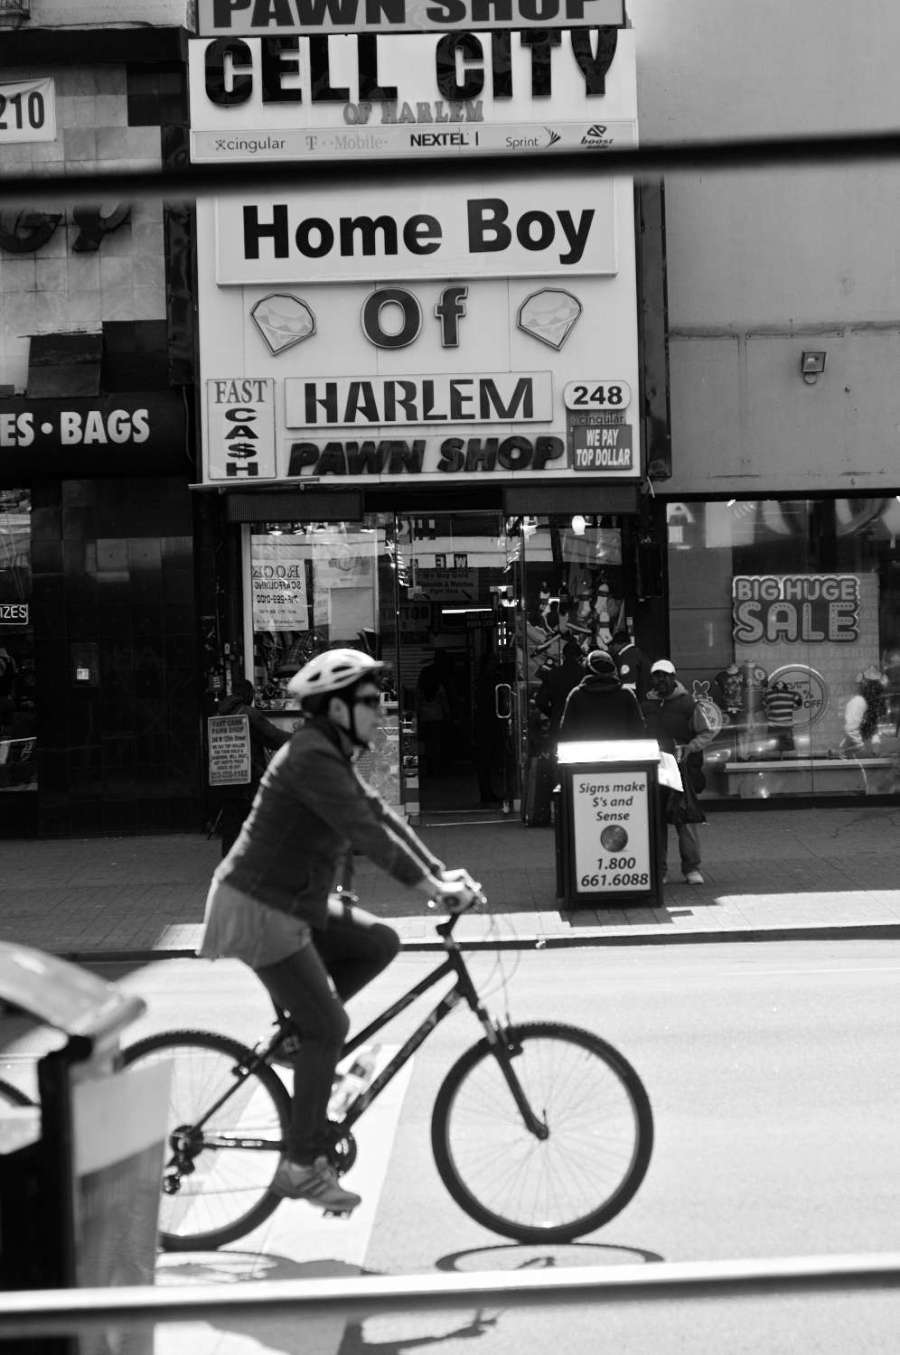 Home Boy of Harlem